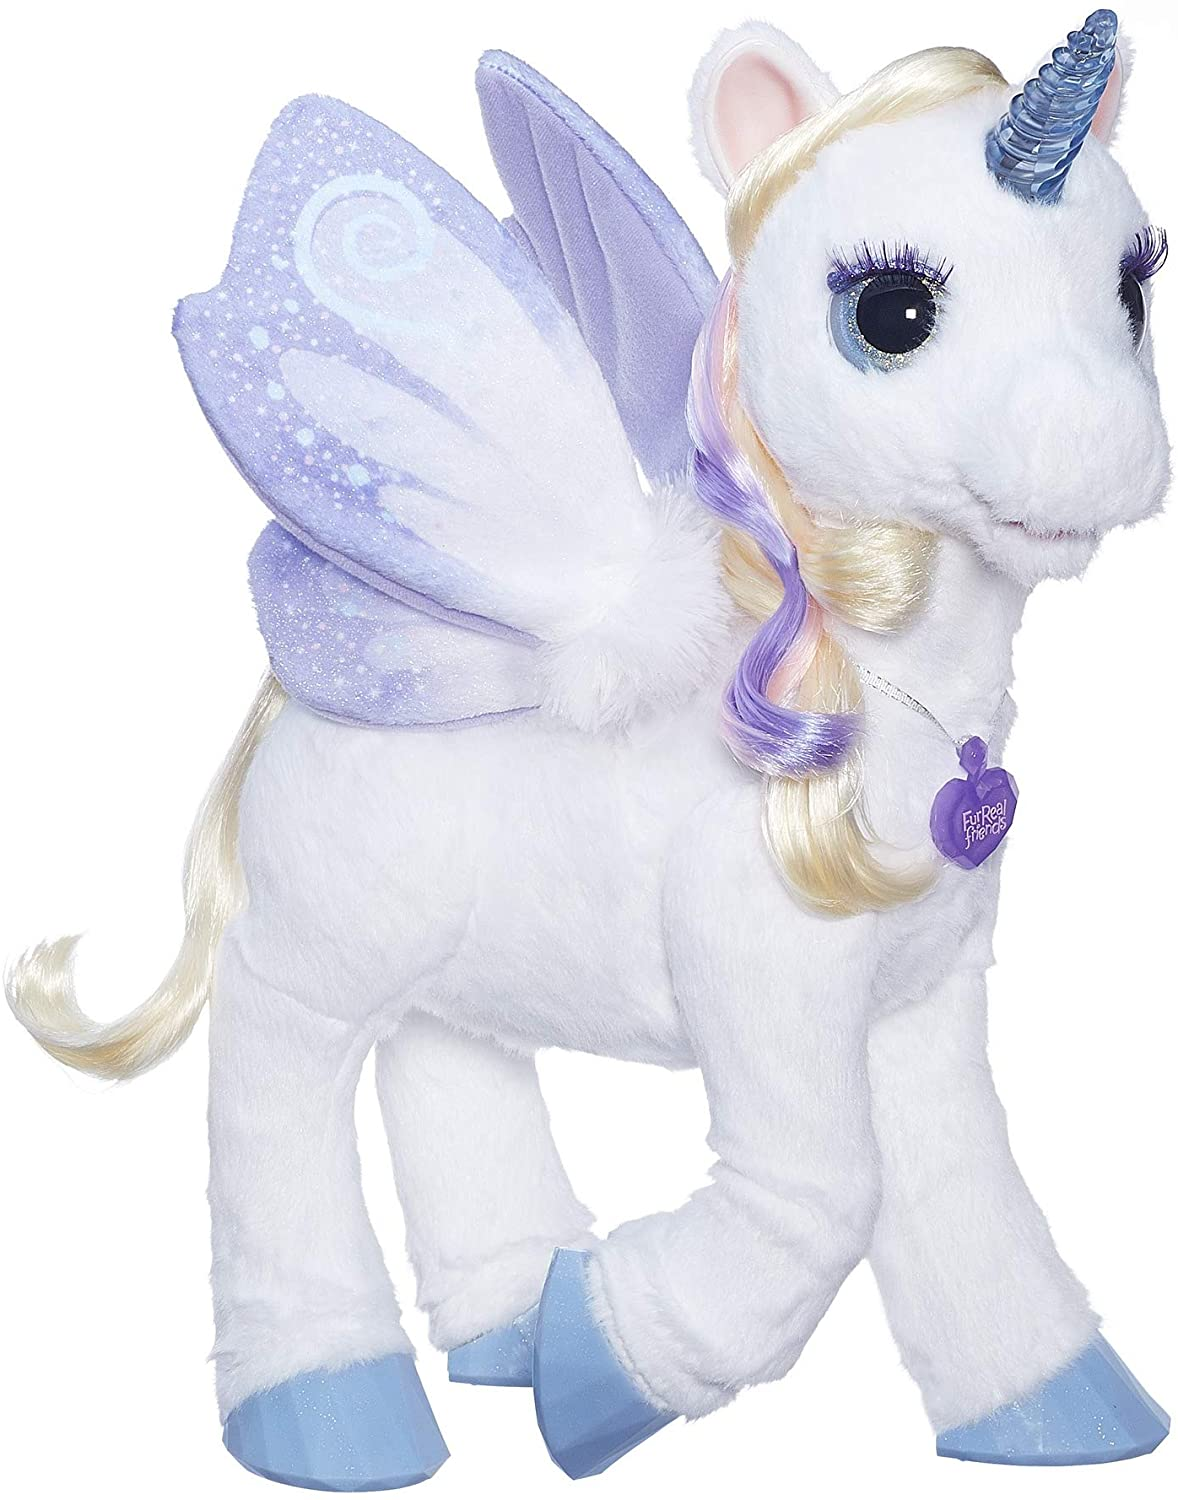 Review of furReal StarLily, My Magical Unicorn Interactive Plush Pet Toy